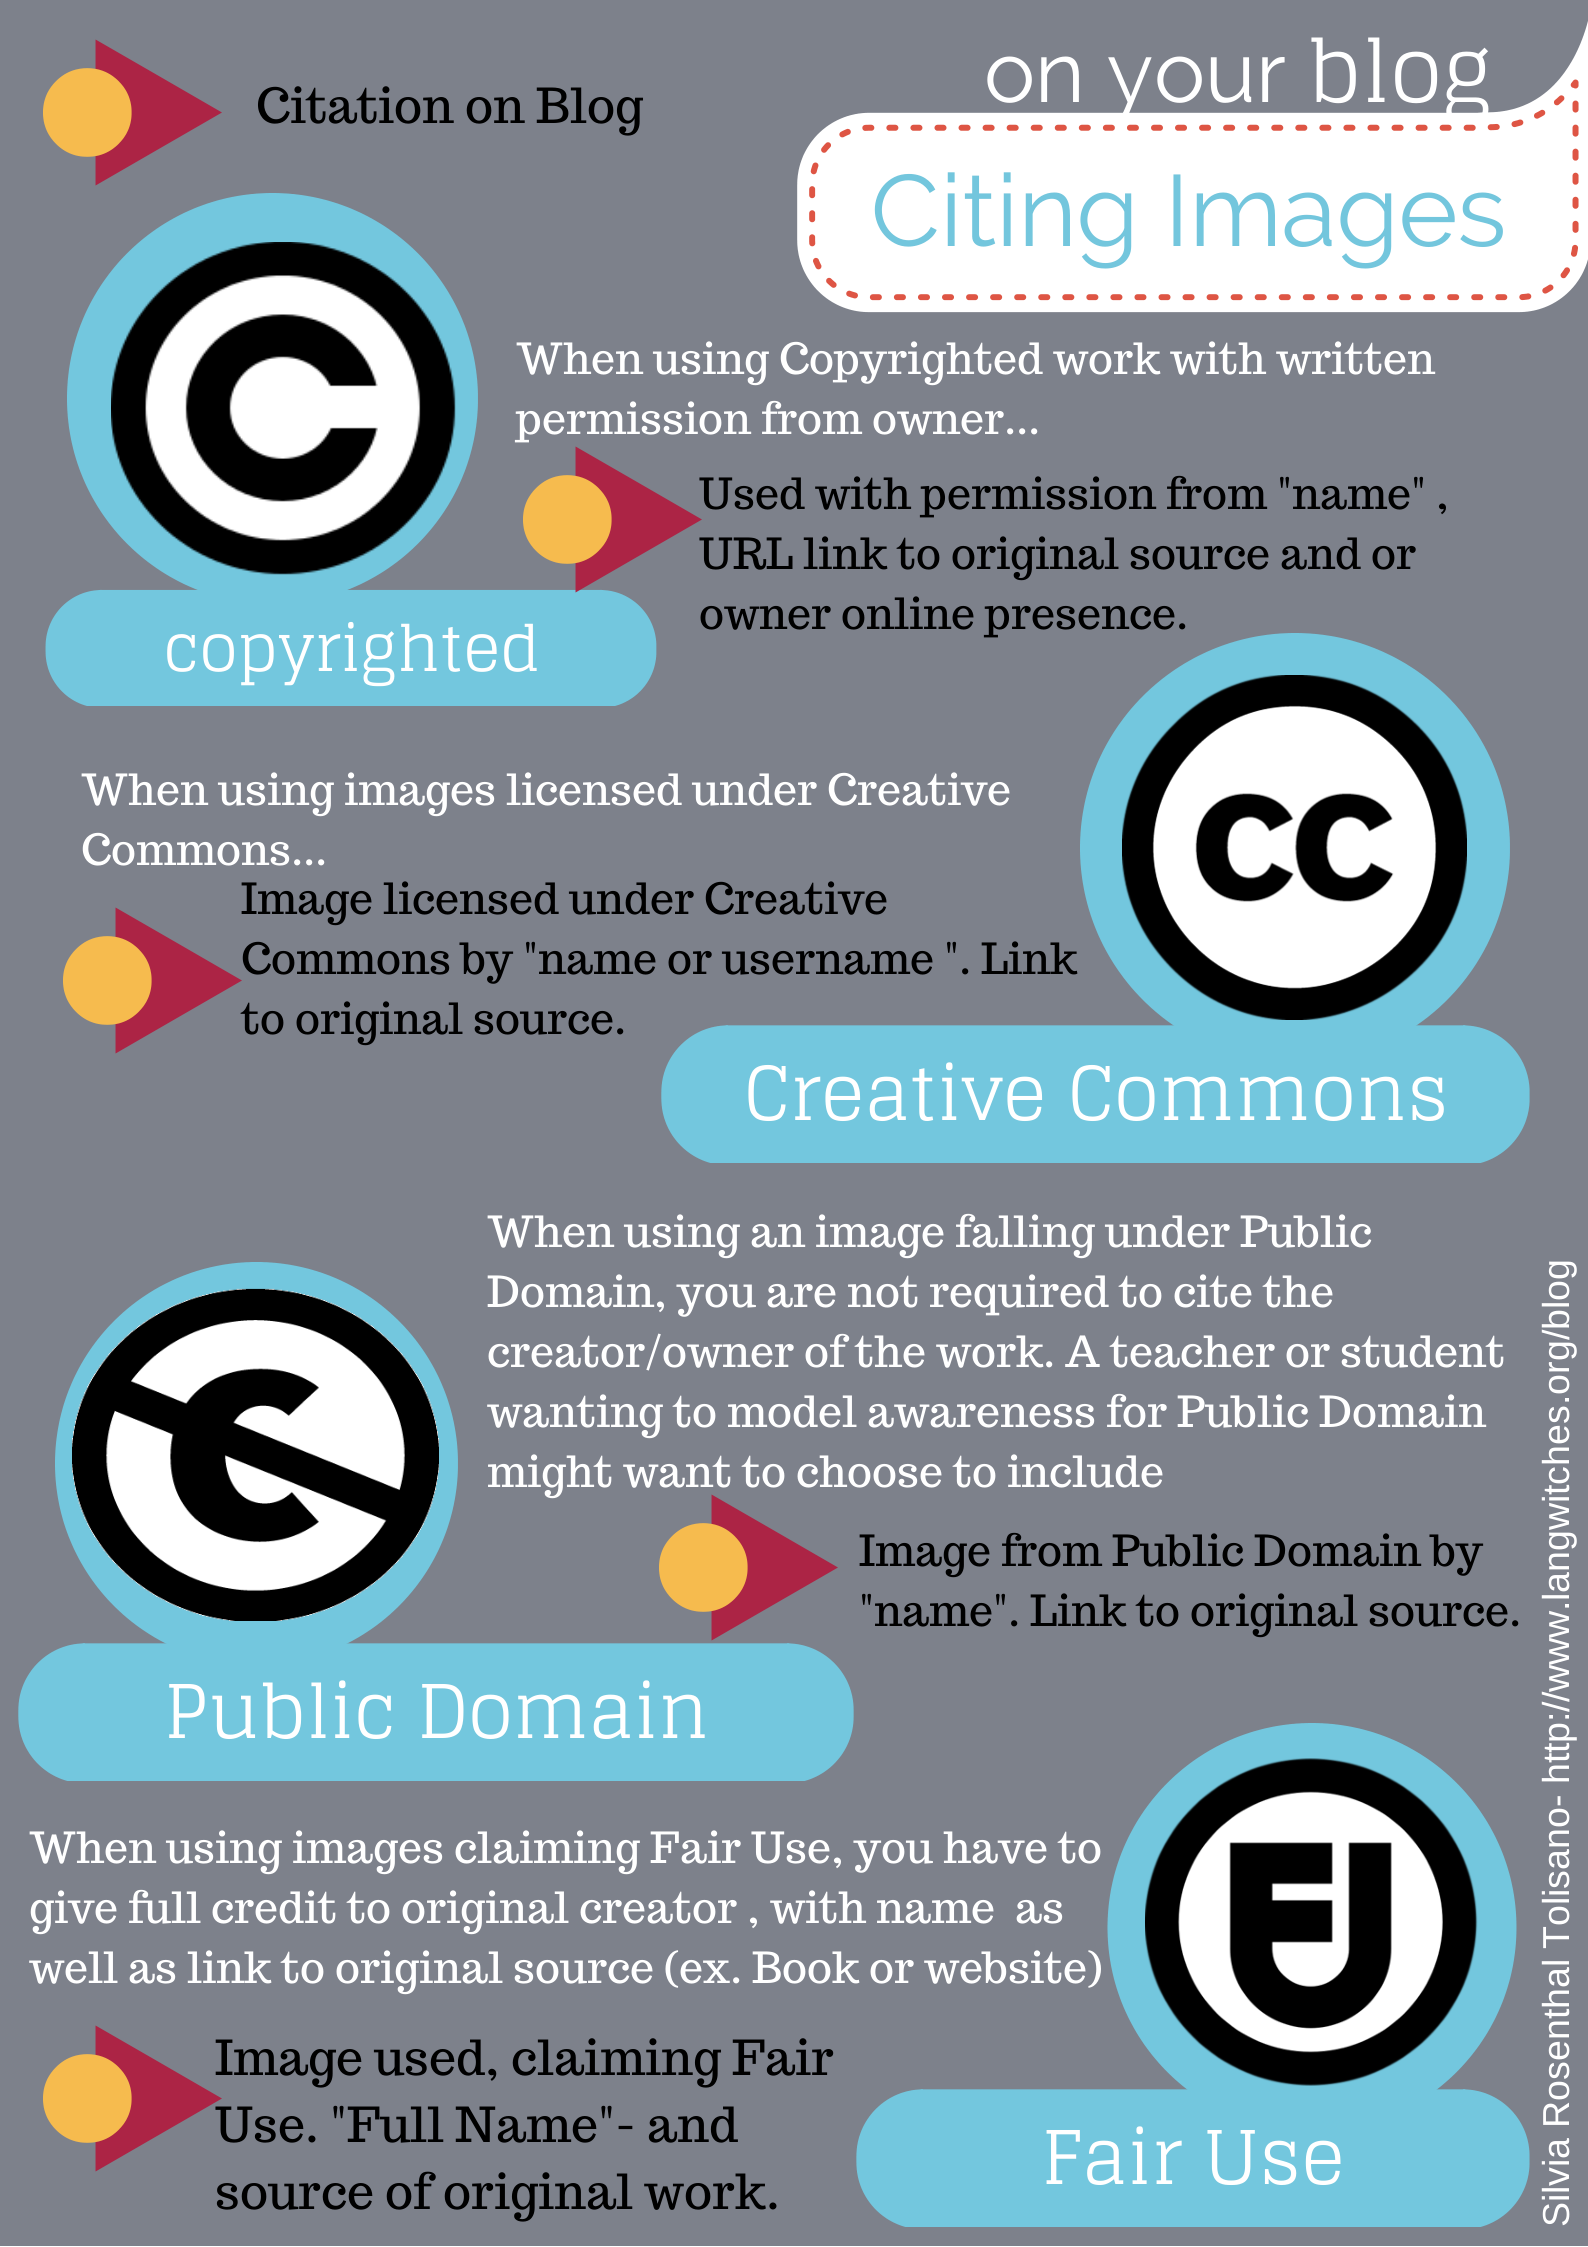 how to cite images on your blog